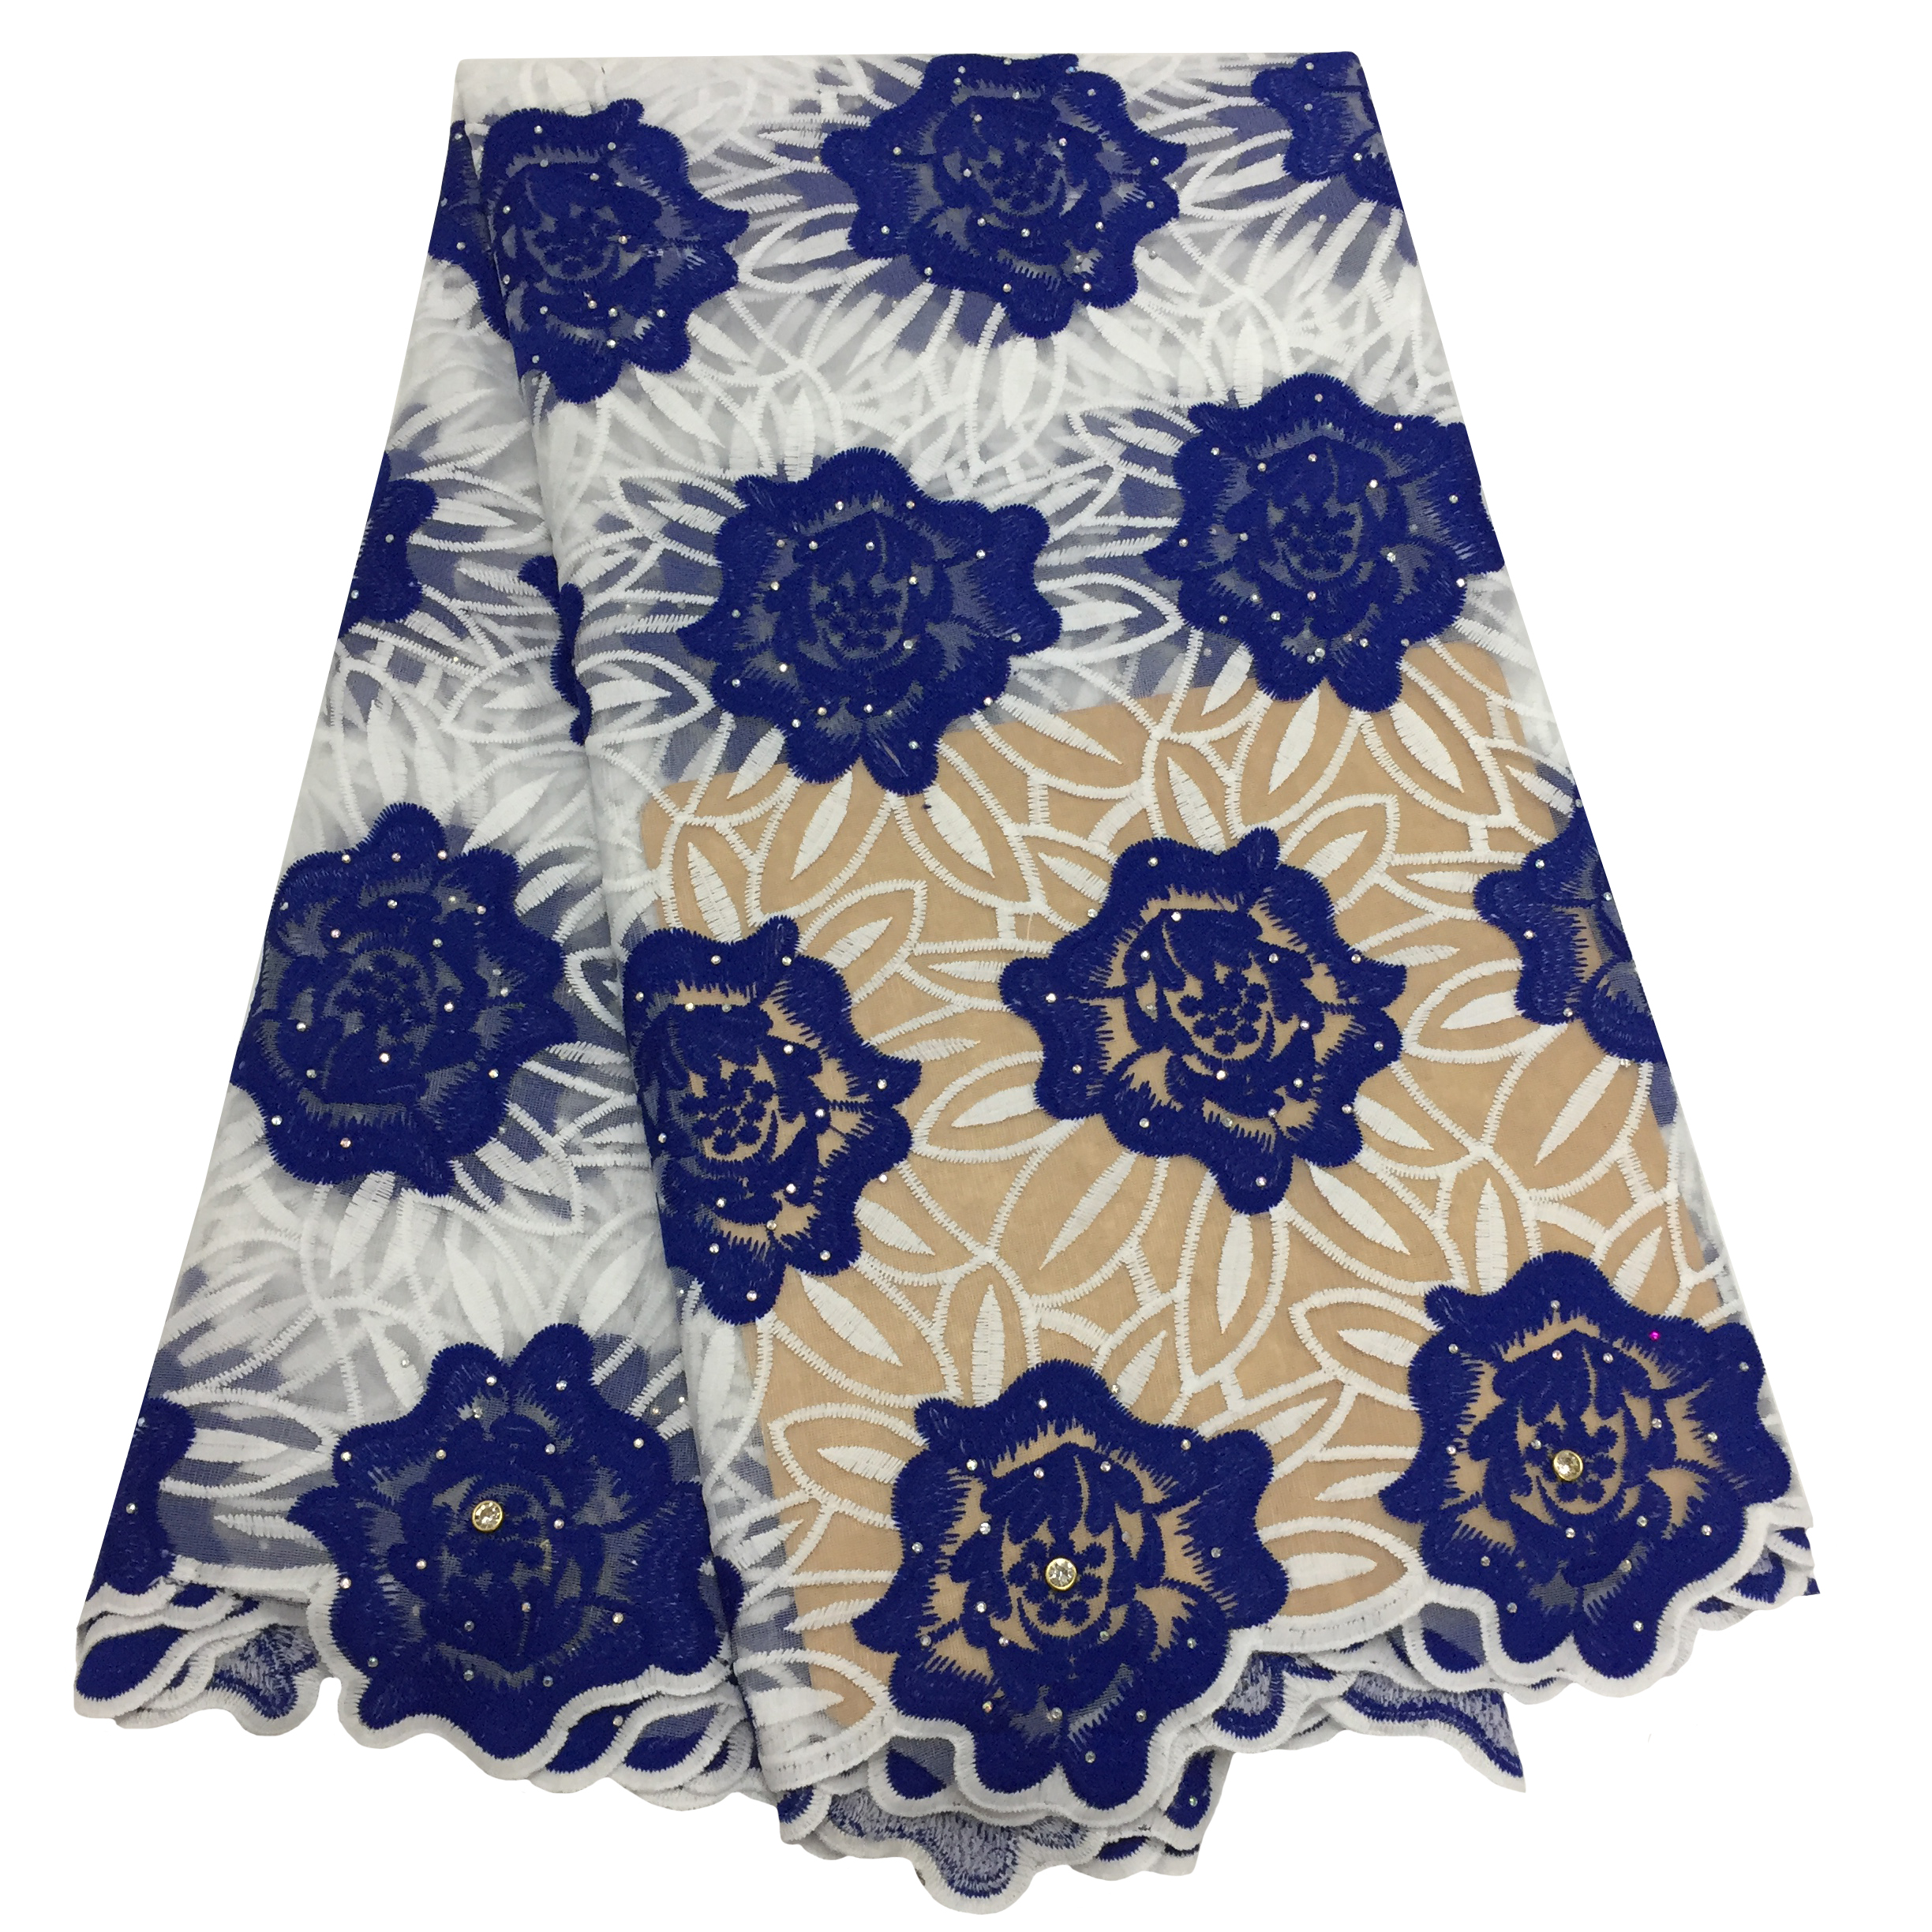 Fashion Royal Blue African Lace Fabric 2020 High Quality French Nigerian Mesh Tulle Lace Fabrics With Beads For Wedding Party